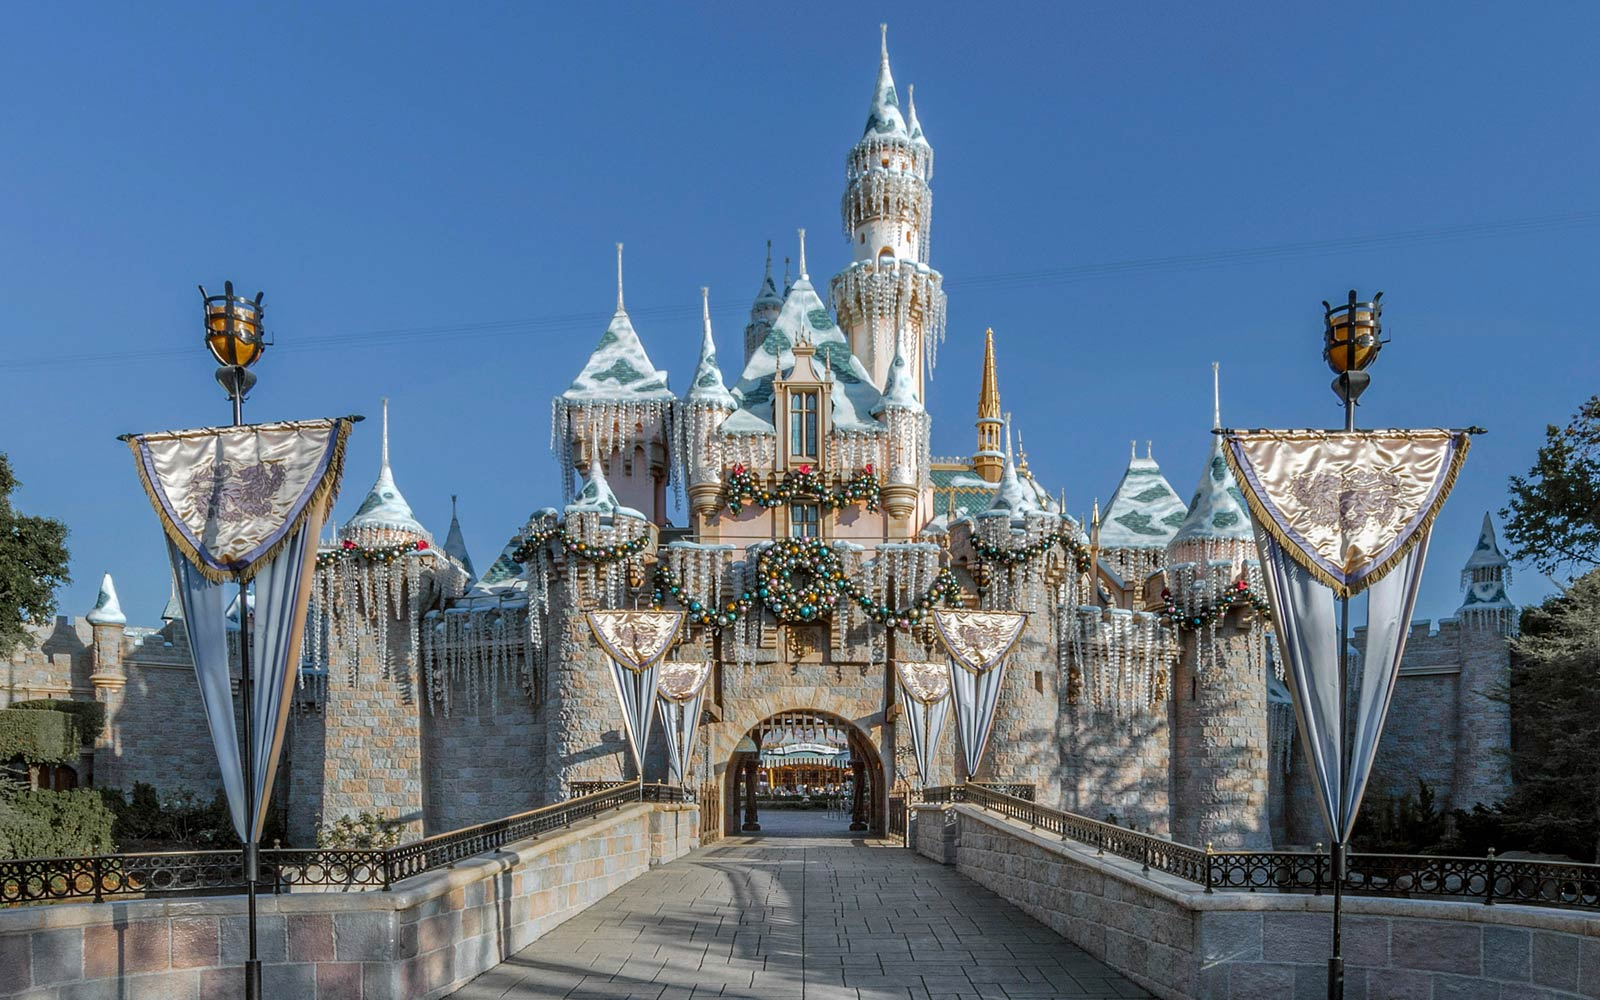 Sleeping Beauty Winter Castle during the Holidays